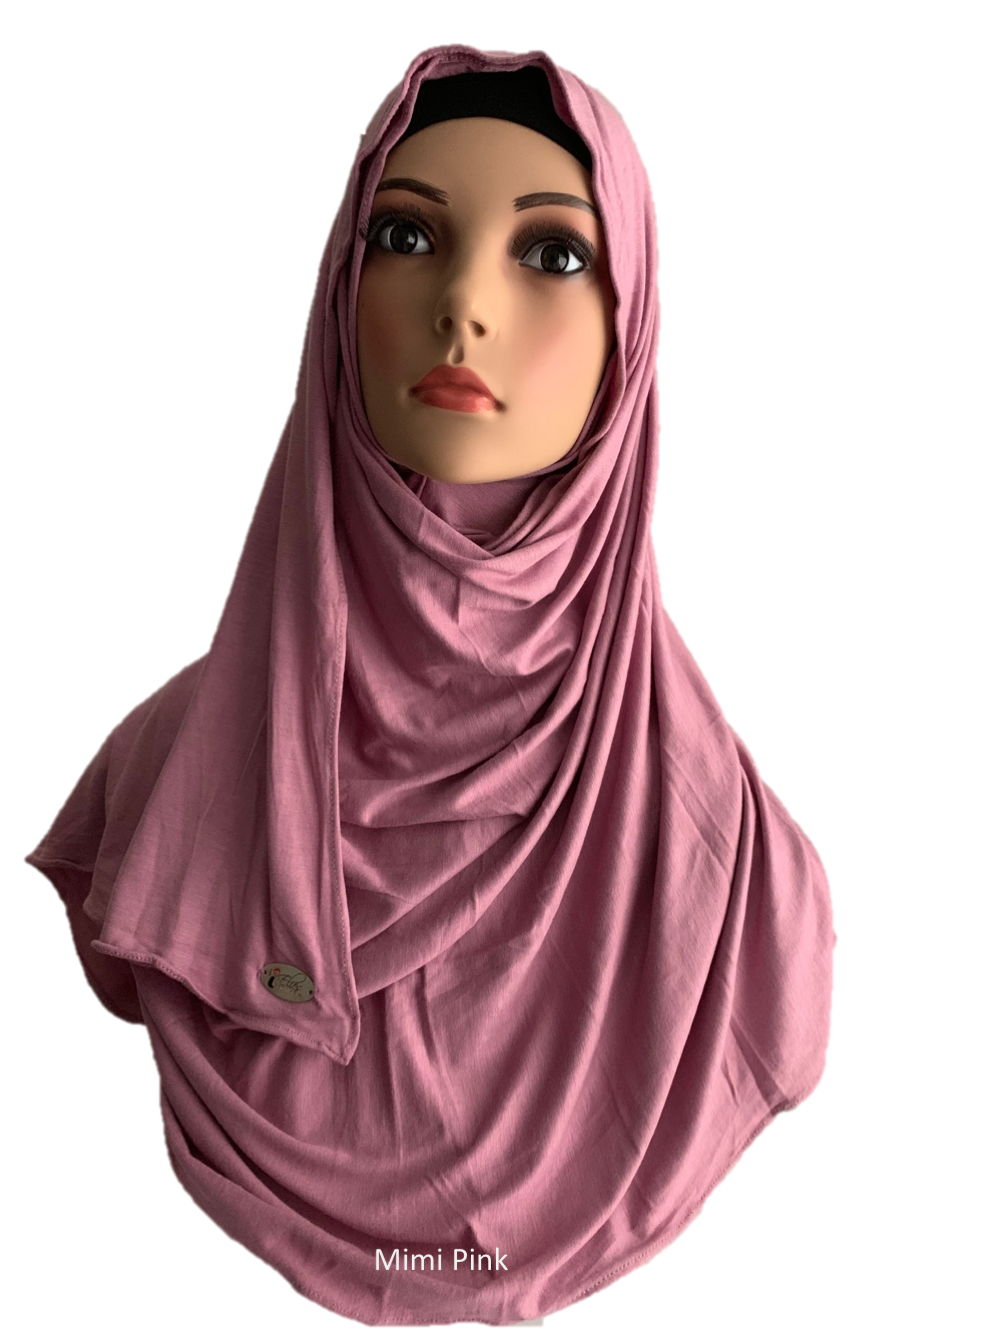 Mimi Pink stretchy (COT) instant hijab SF